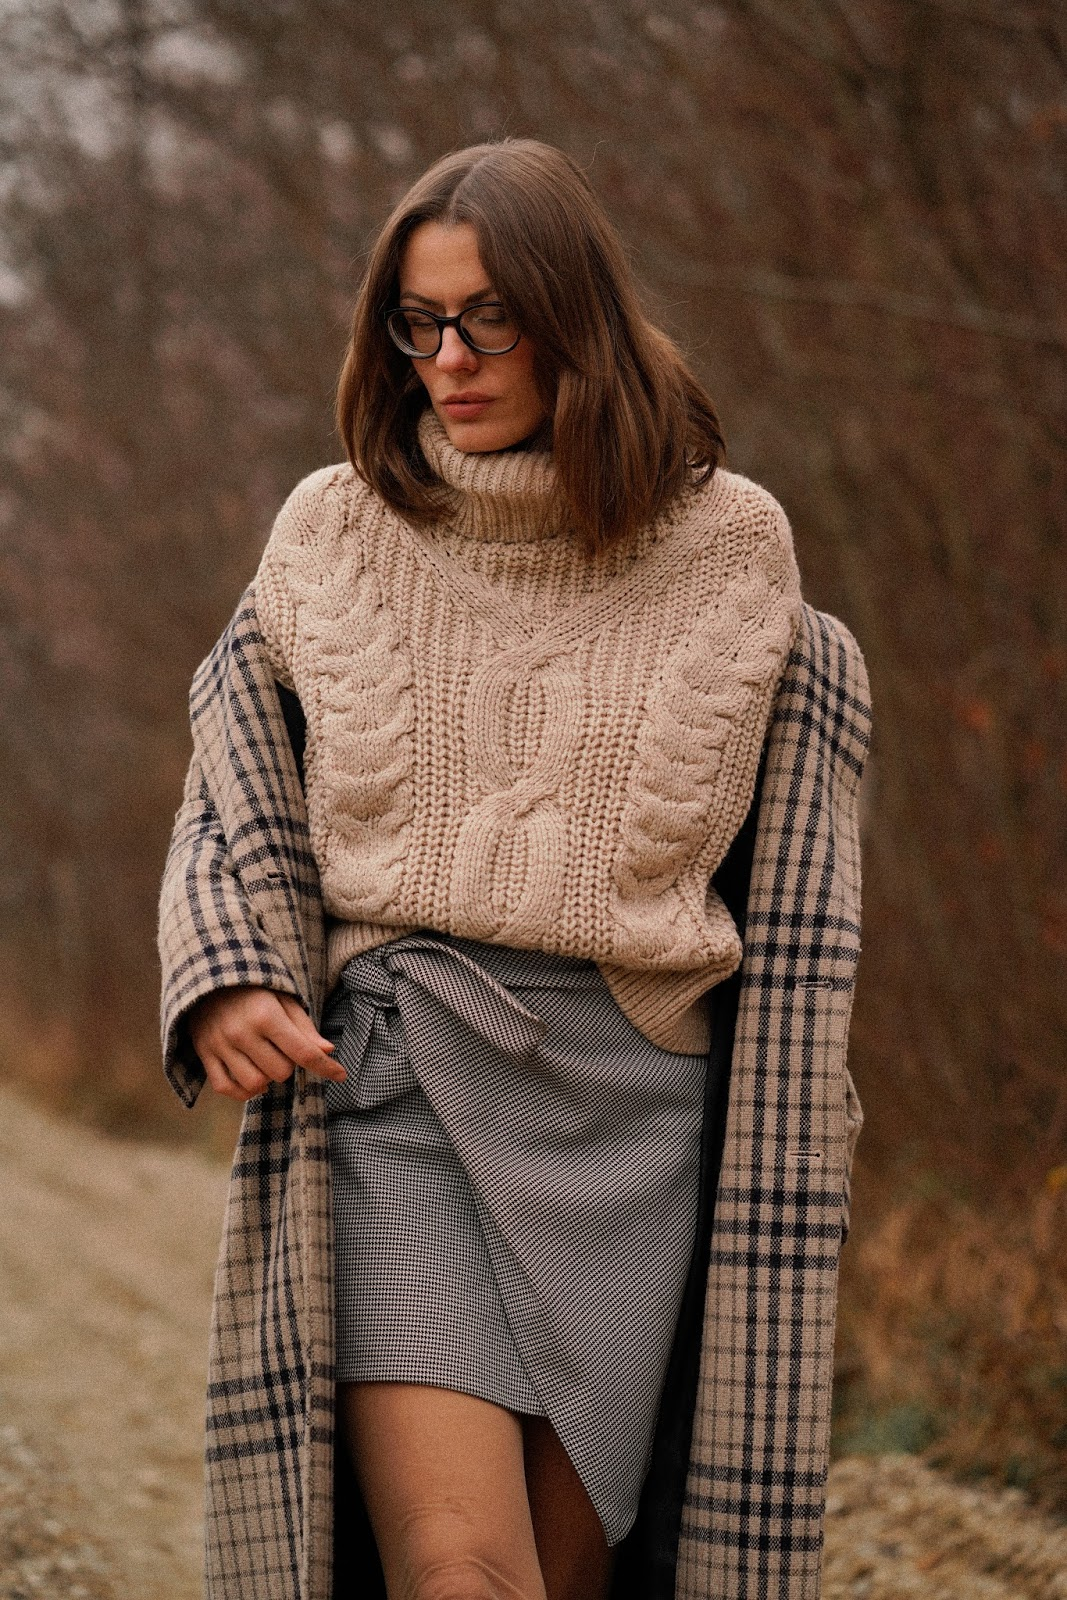 BEING OUTSIDE: AN OUTDOOR LOOK